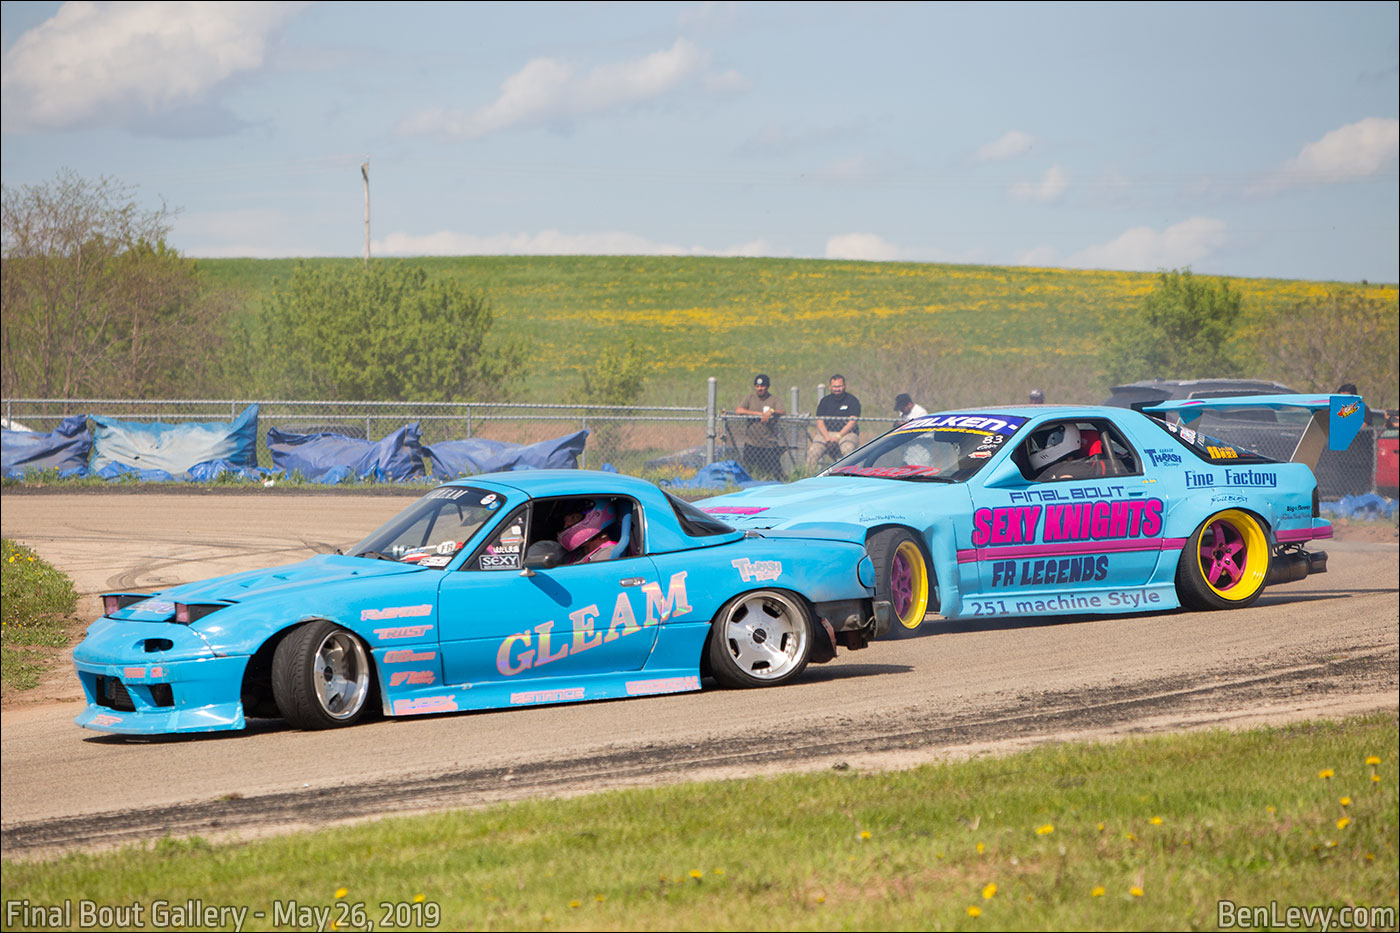 Miata and RX-7 drifting at Final Bout Gallery - BenLevy com